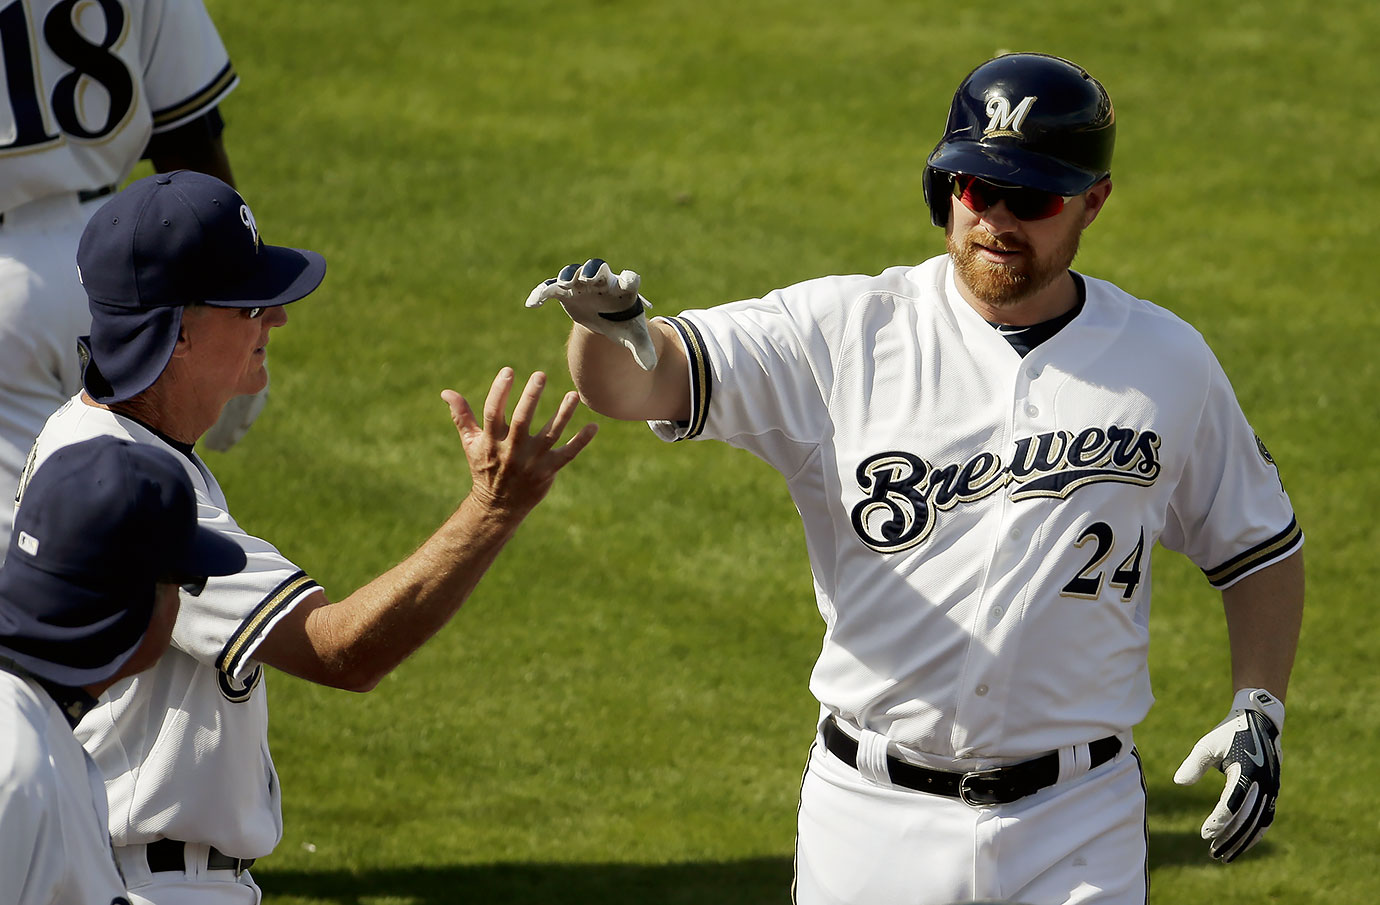 The Brewers banned high fives in an attempt to halt the spread of pinkeye in their clubhouse.